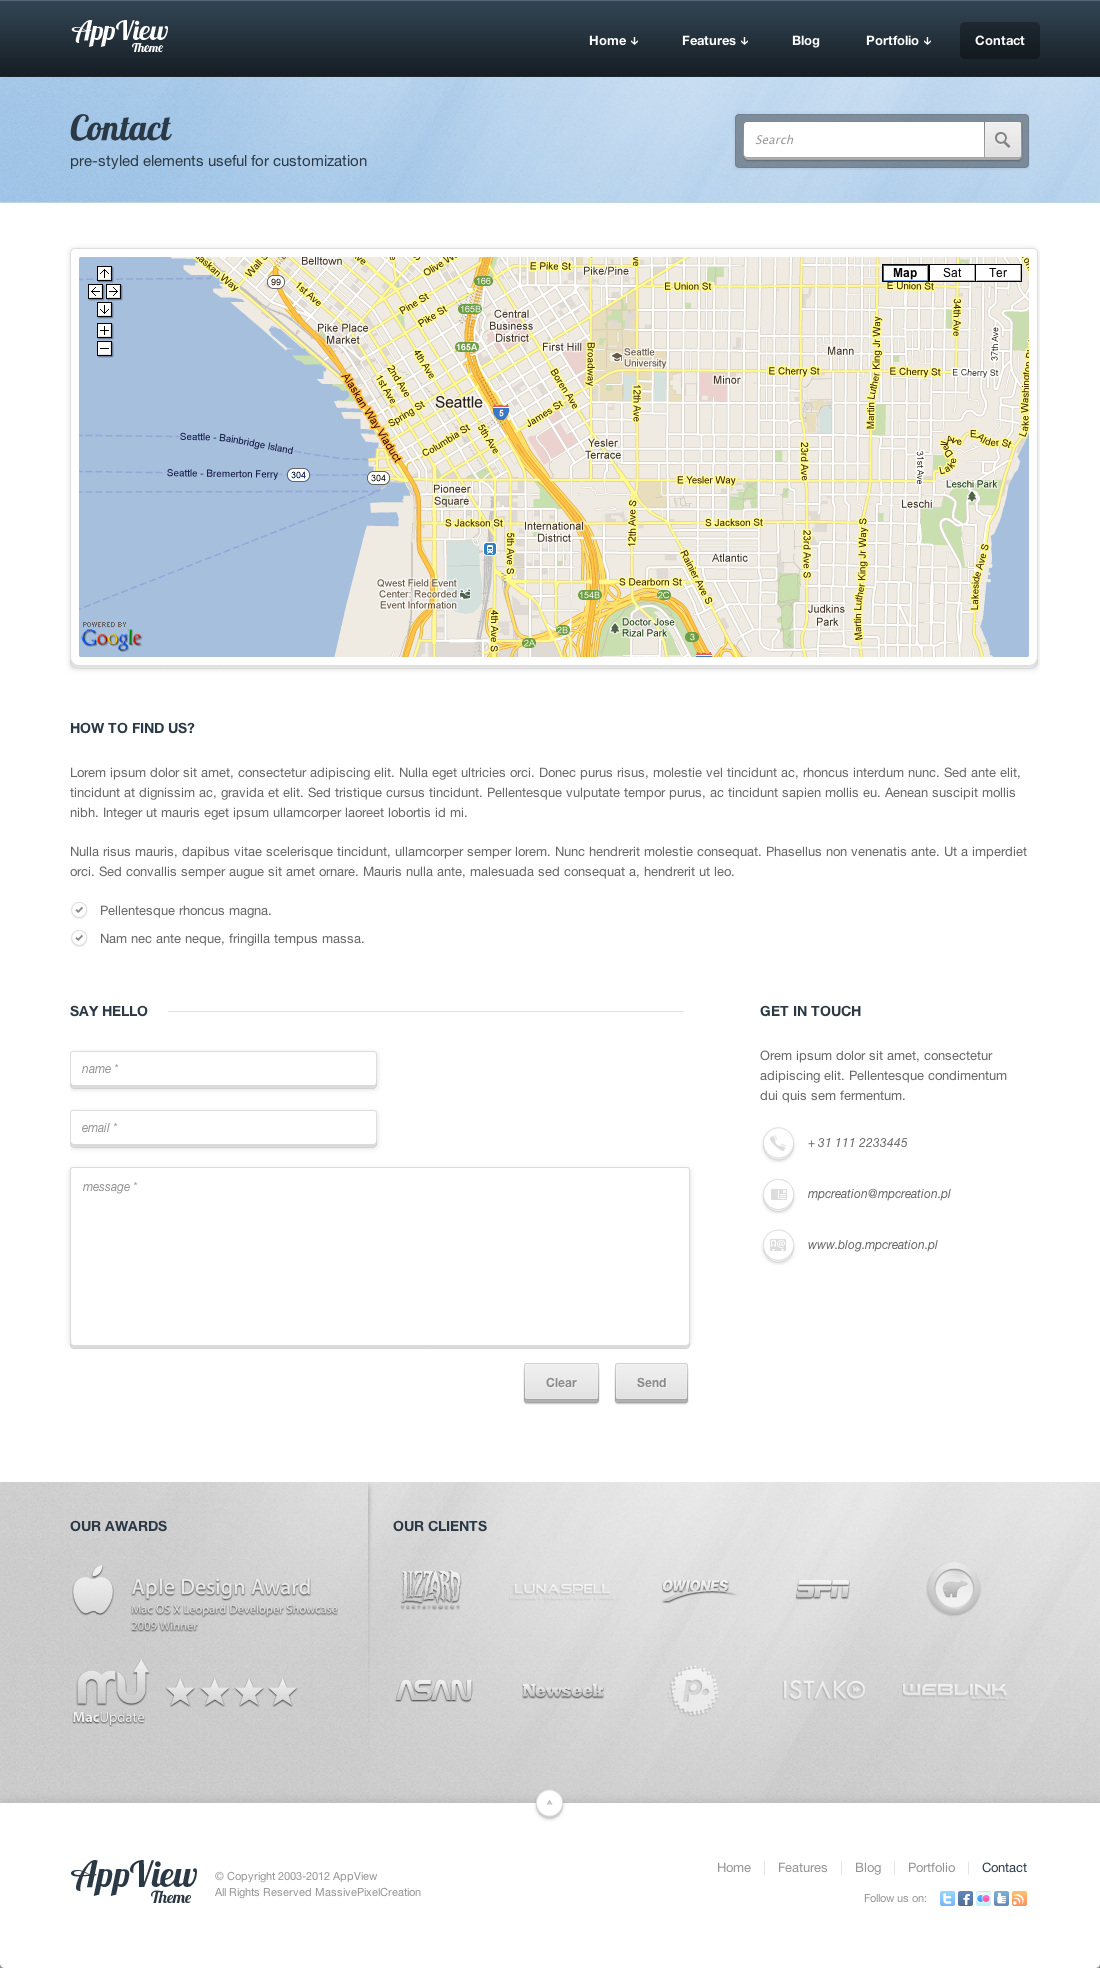 AppView Professional Portfolio WordPress Theme - Screenshot 1 - Contact Page